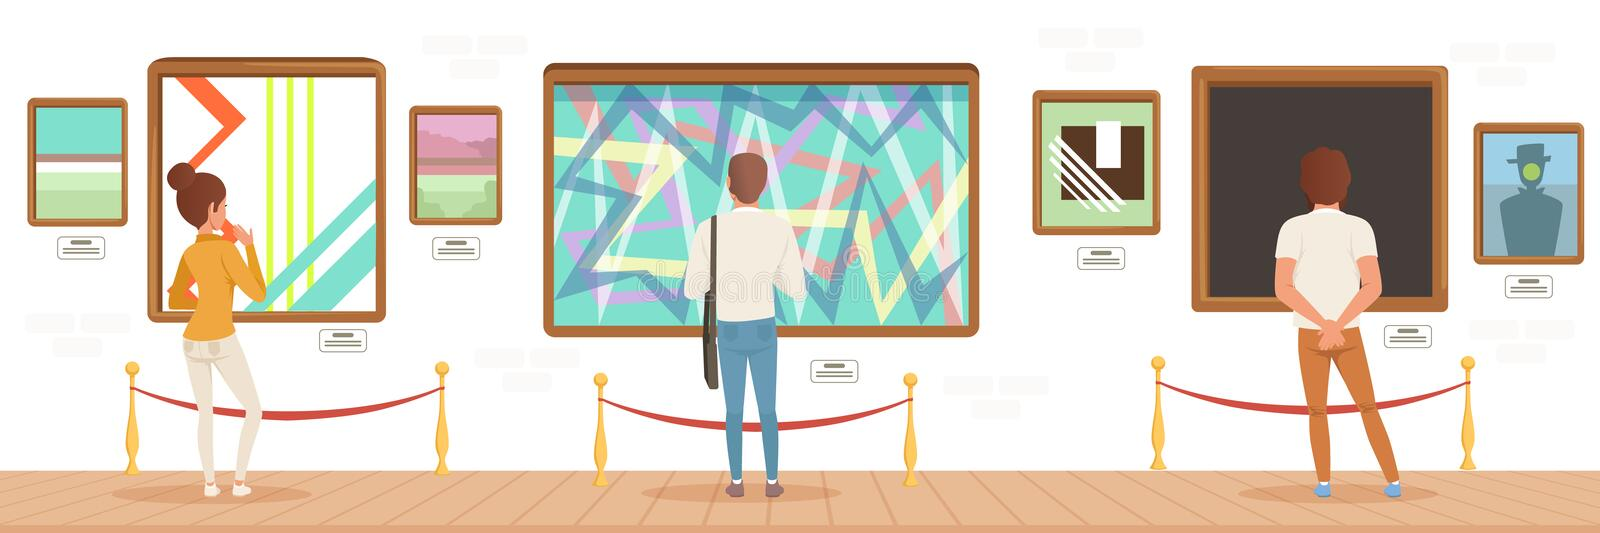 Museum visitors standing in modern art gallery in front of colorful paintings, people attending museum horizontal vector. Illustration in flat style stock illustration